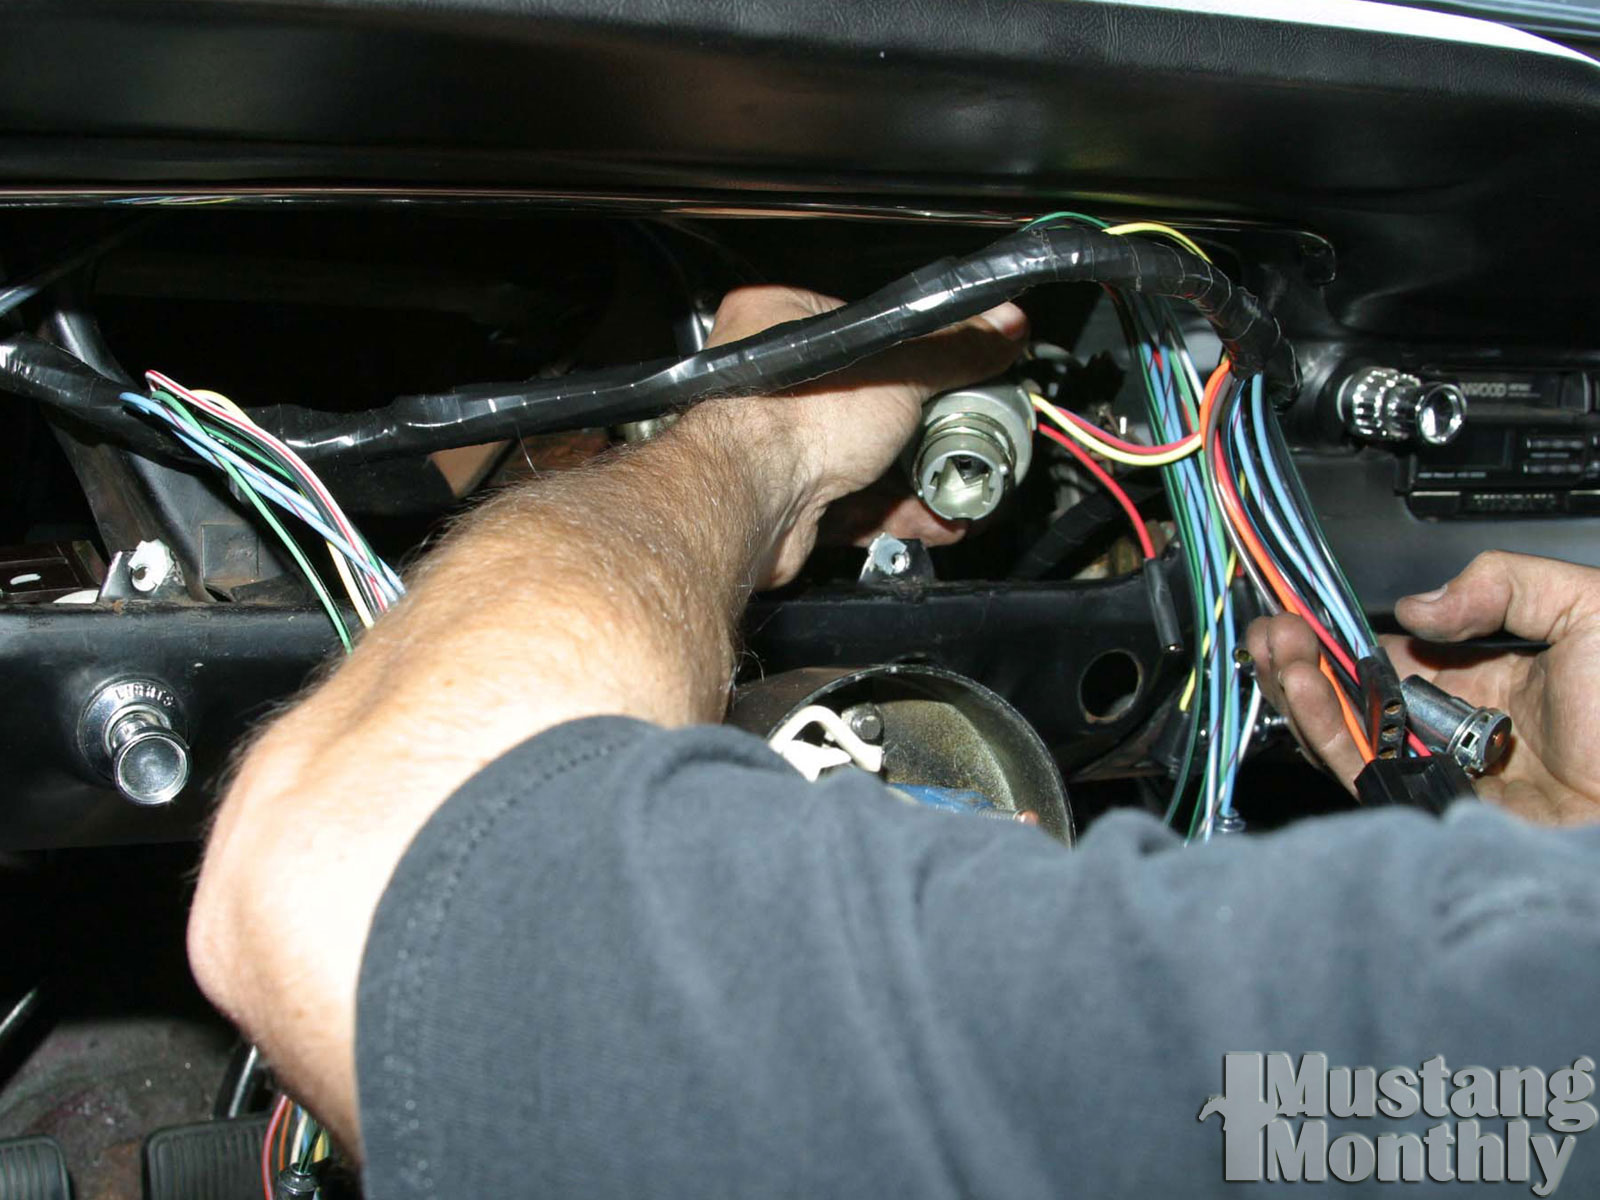 Dash Wiring Harness 1986 Clic - Wiring Diagram & Cable ... on